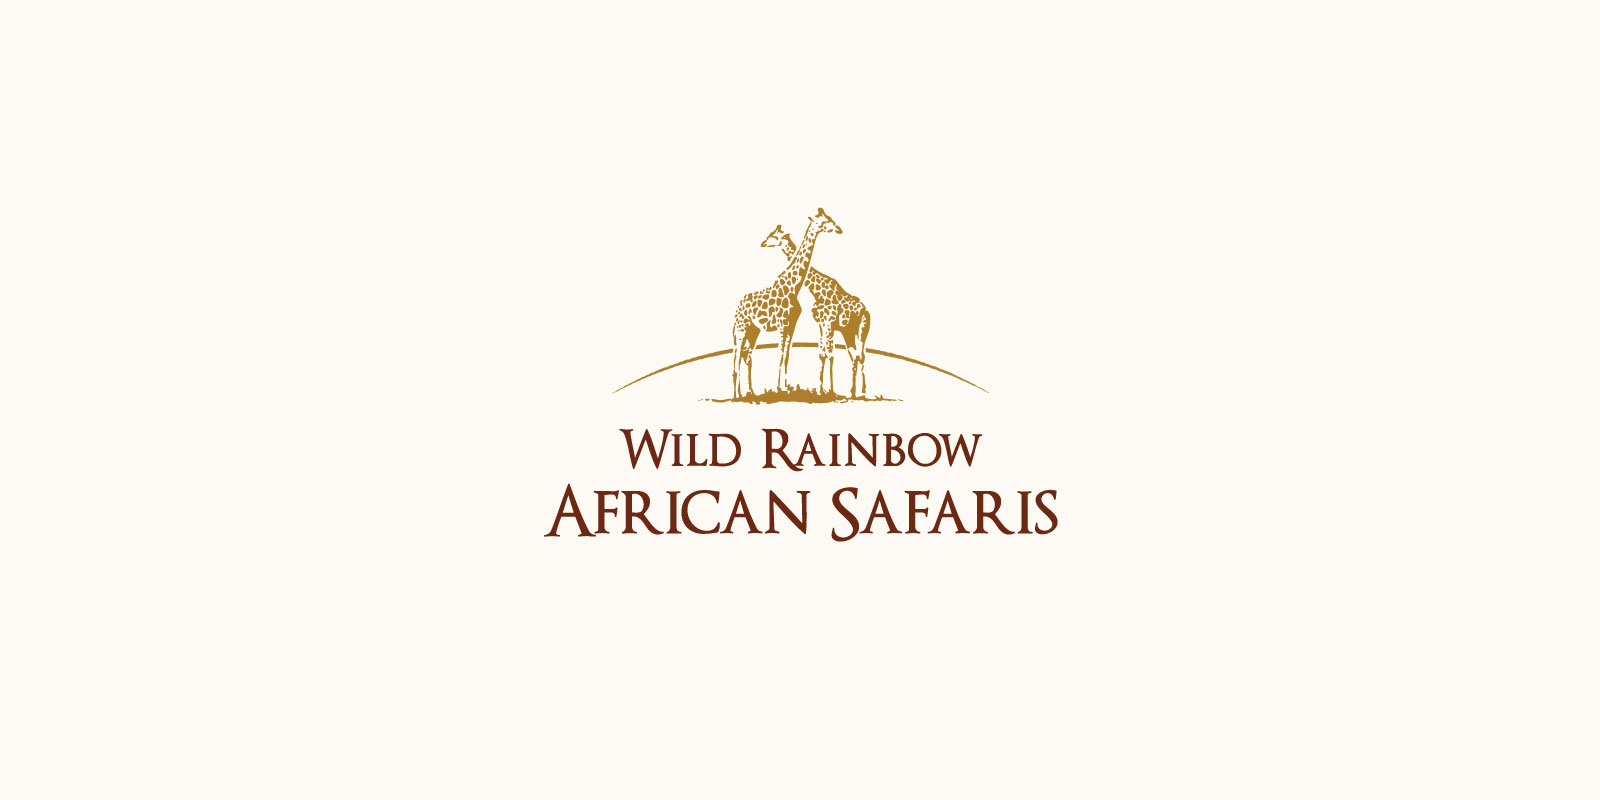 Wild Rainbow African Safari logo on a white background with to giraffes with necks crossed in gold, with burgundy type